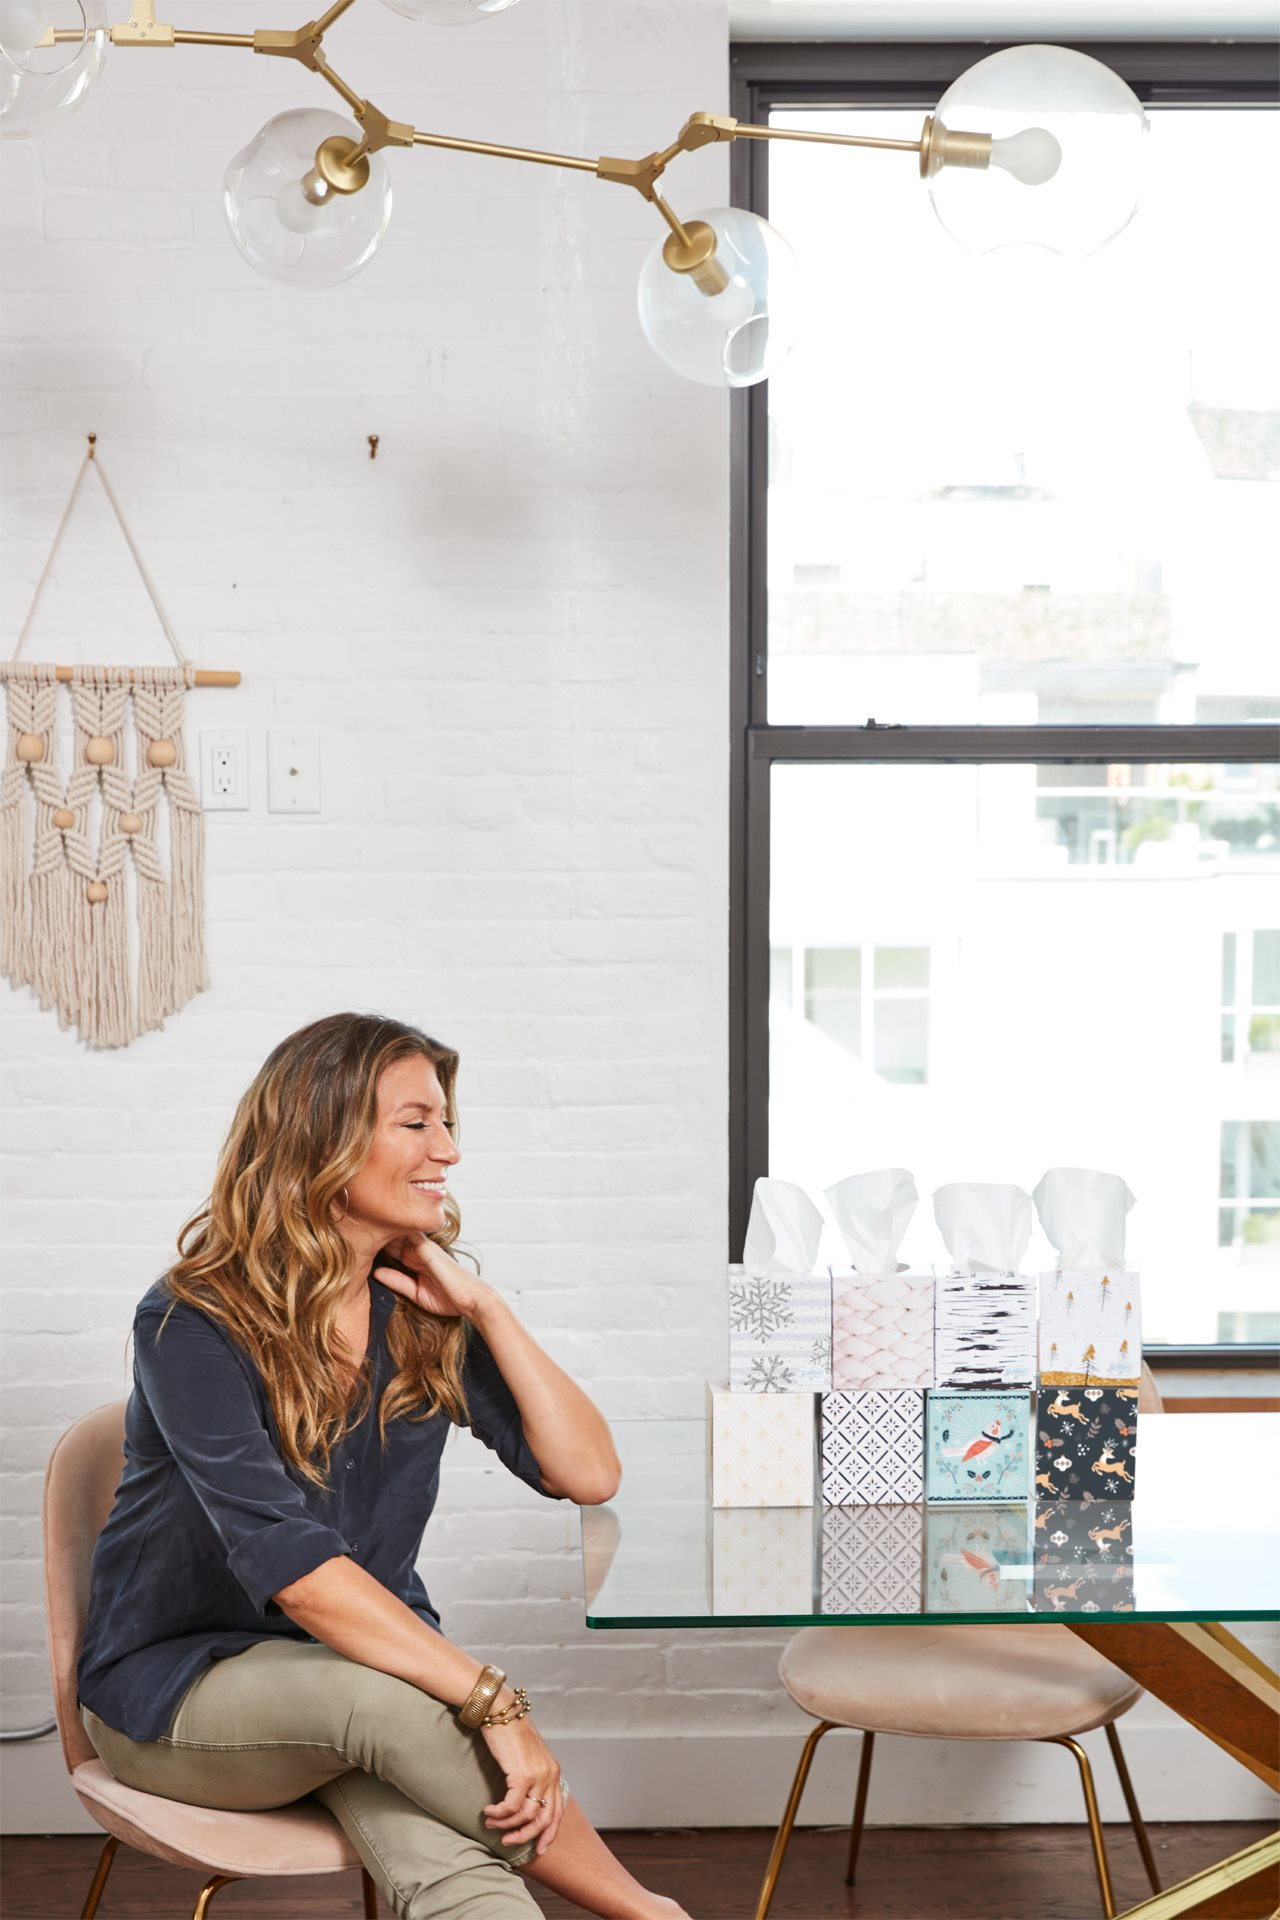 3 winter décor tips to always follow, according to Genevieve Gorder